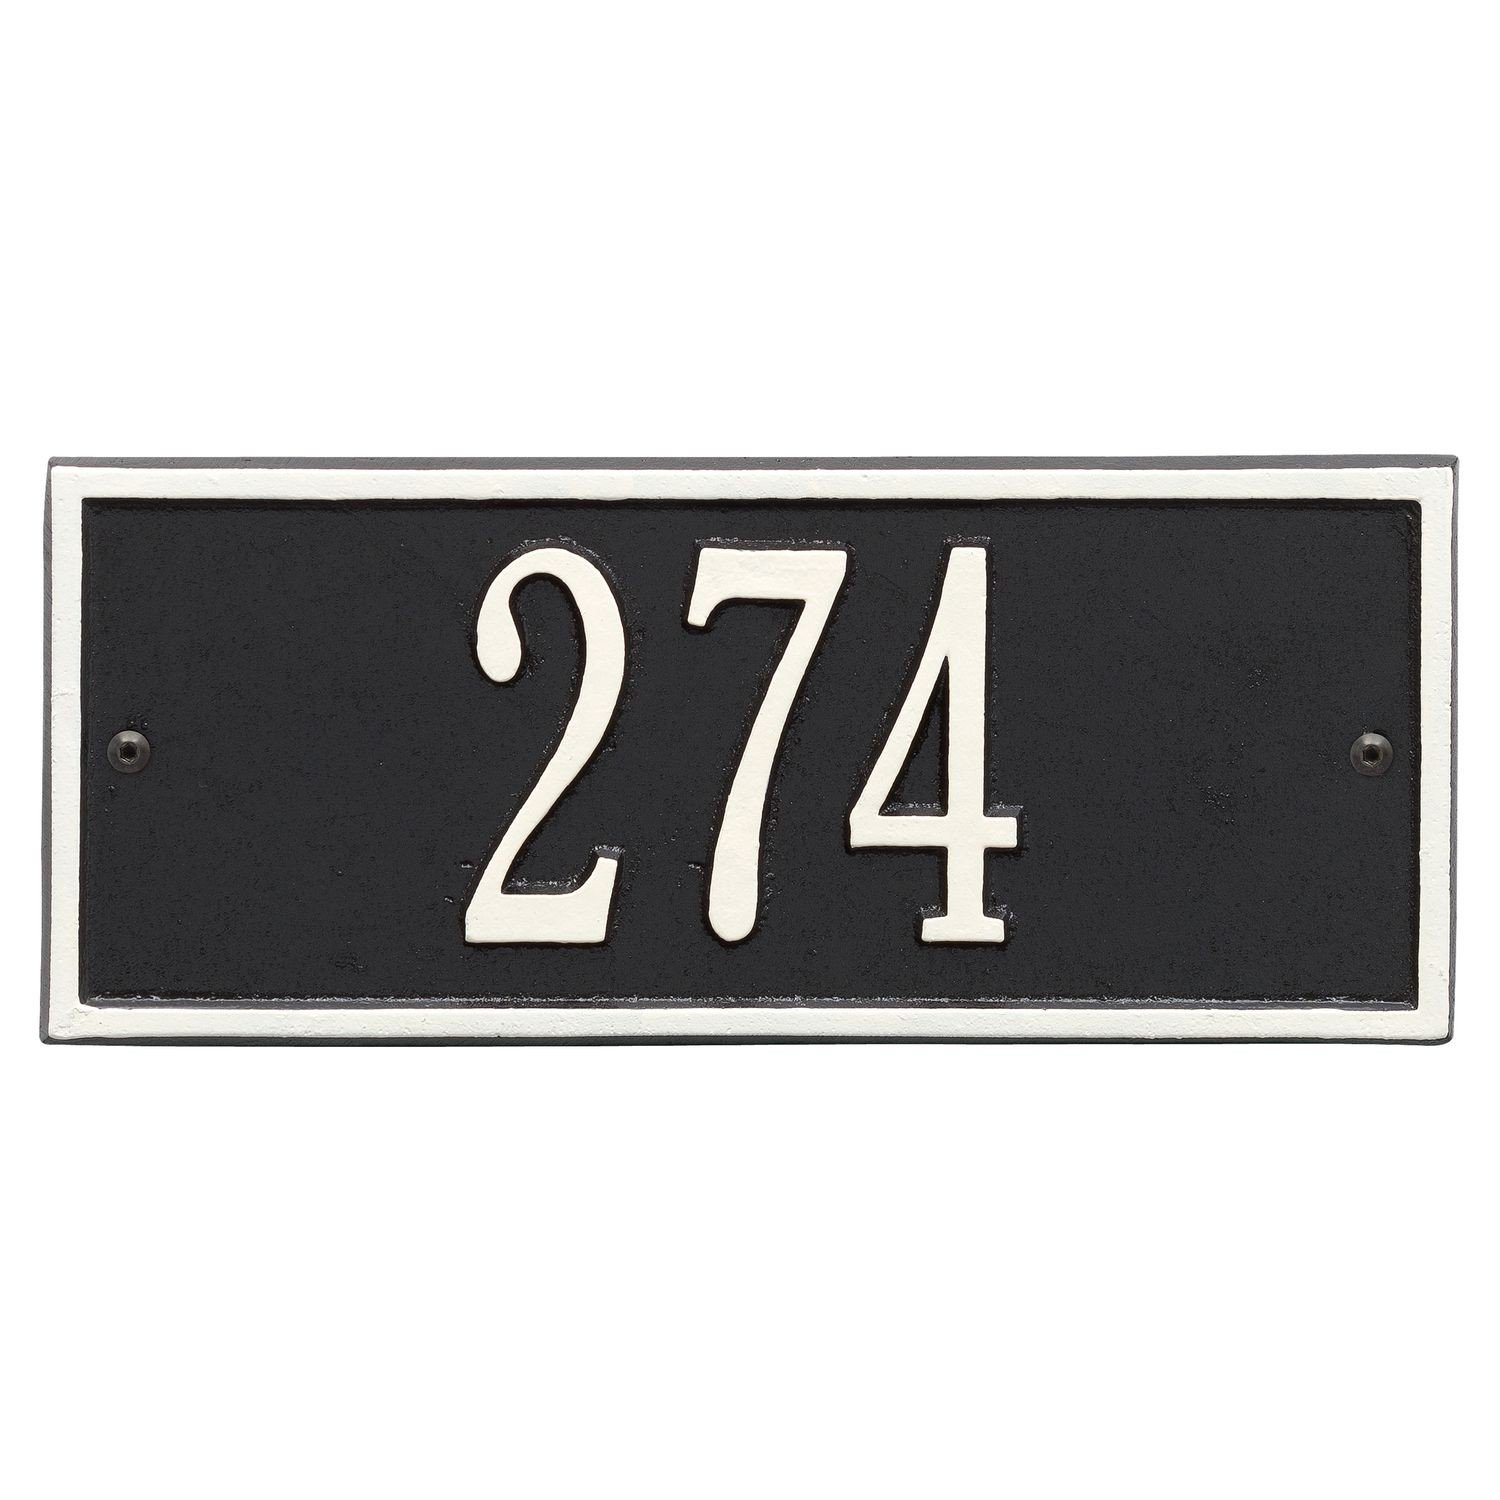 Whitehall Personalized Cast Metal Address Plaque - Small Hartford Custom House Number Sign - 10.5'' x 4.25'' - Allows Special Characters - Black/White